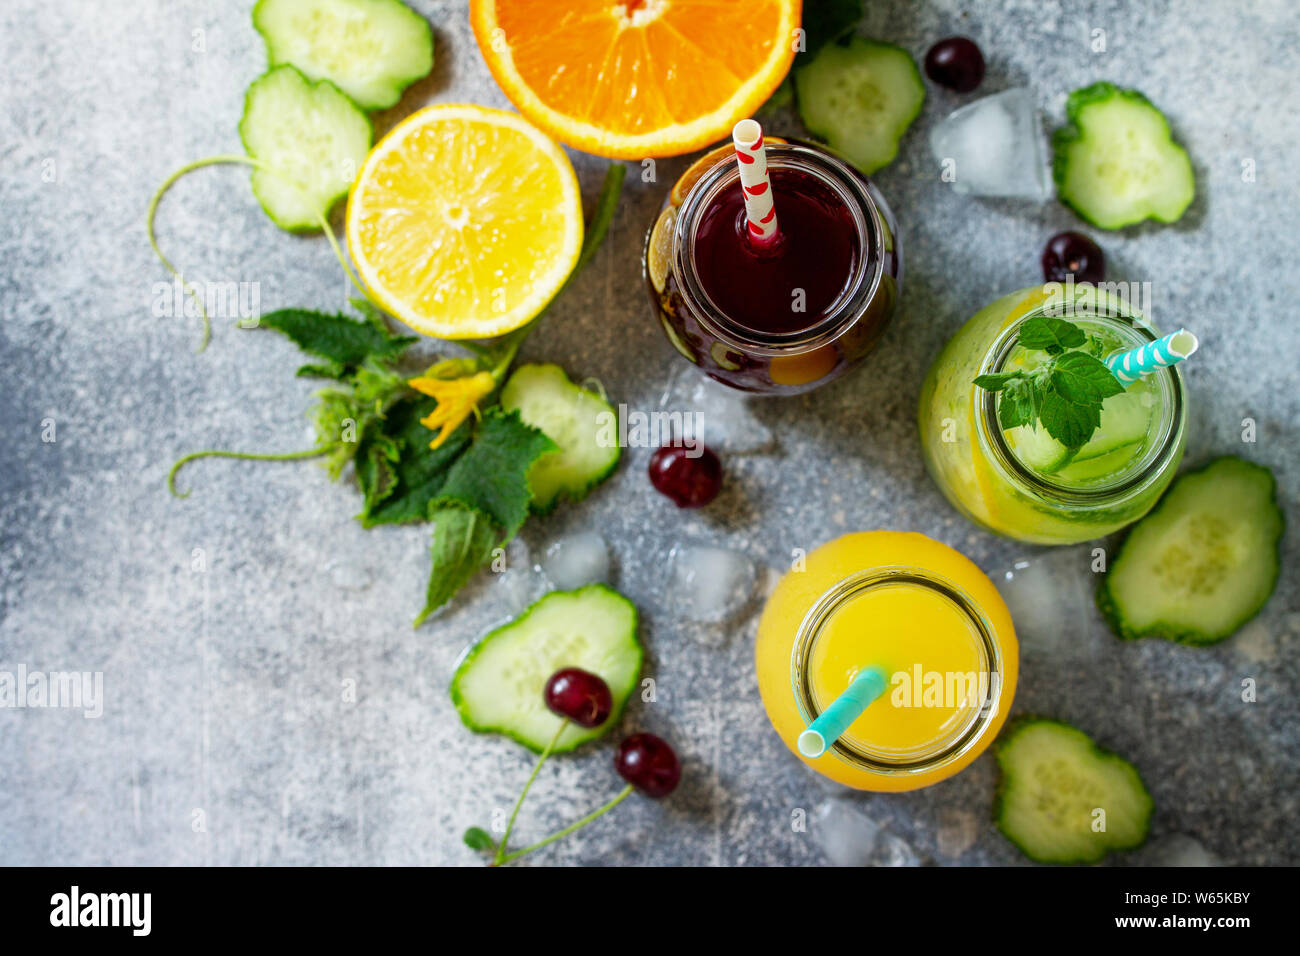 Various refreshments drinks - detox cucumber water, cherry juice and orange juice on stone table. Top view flat lay. Stock Photo